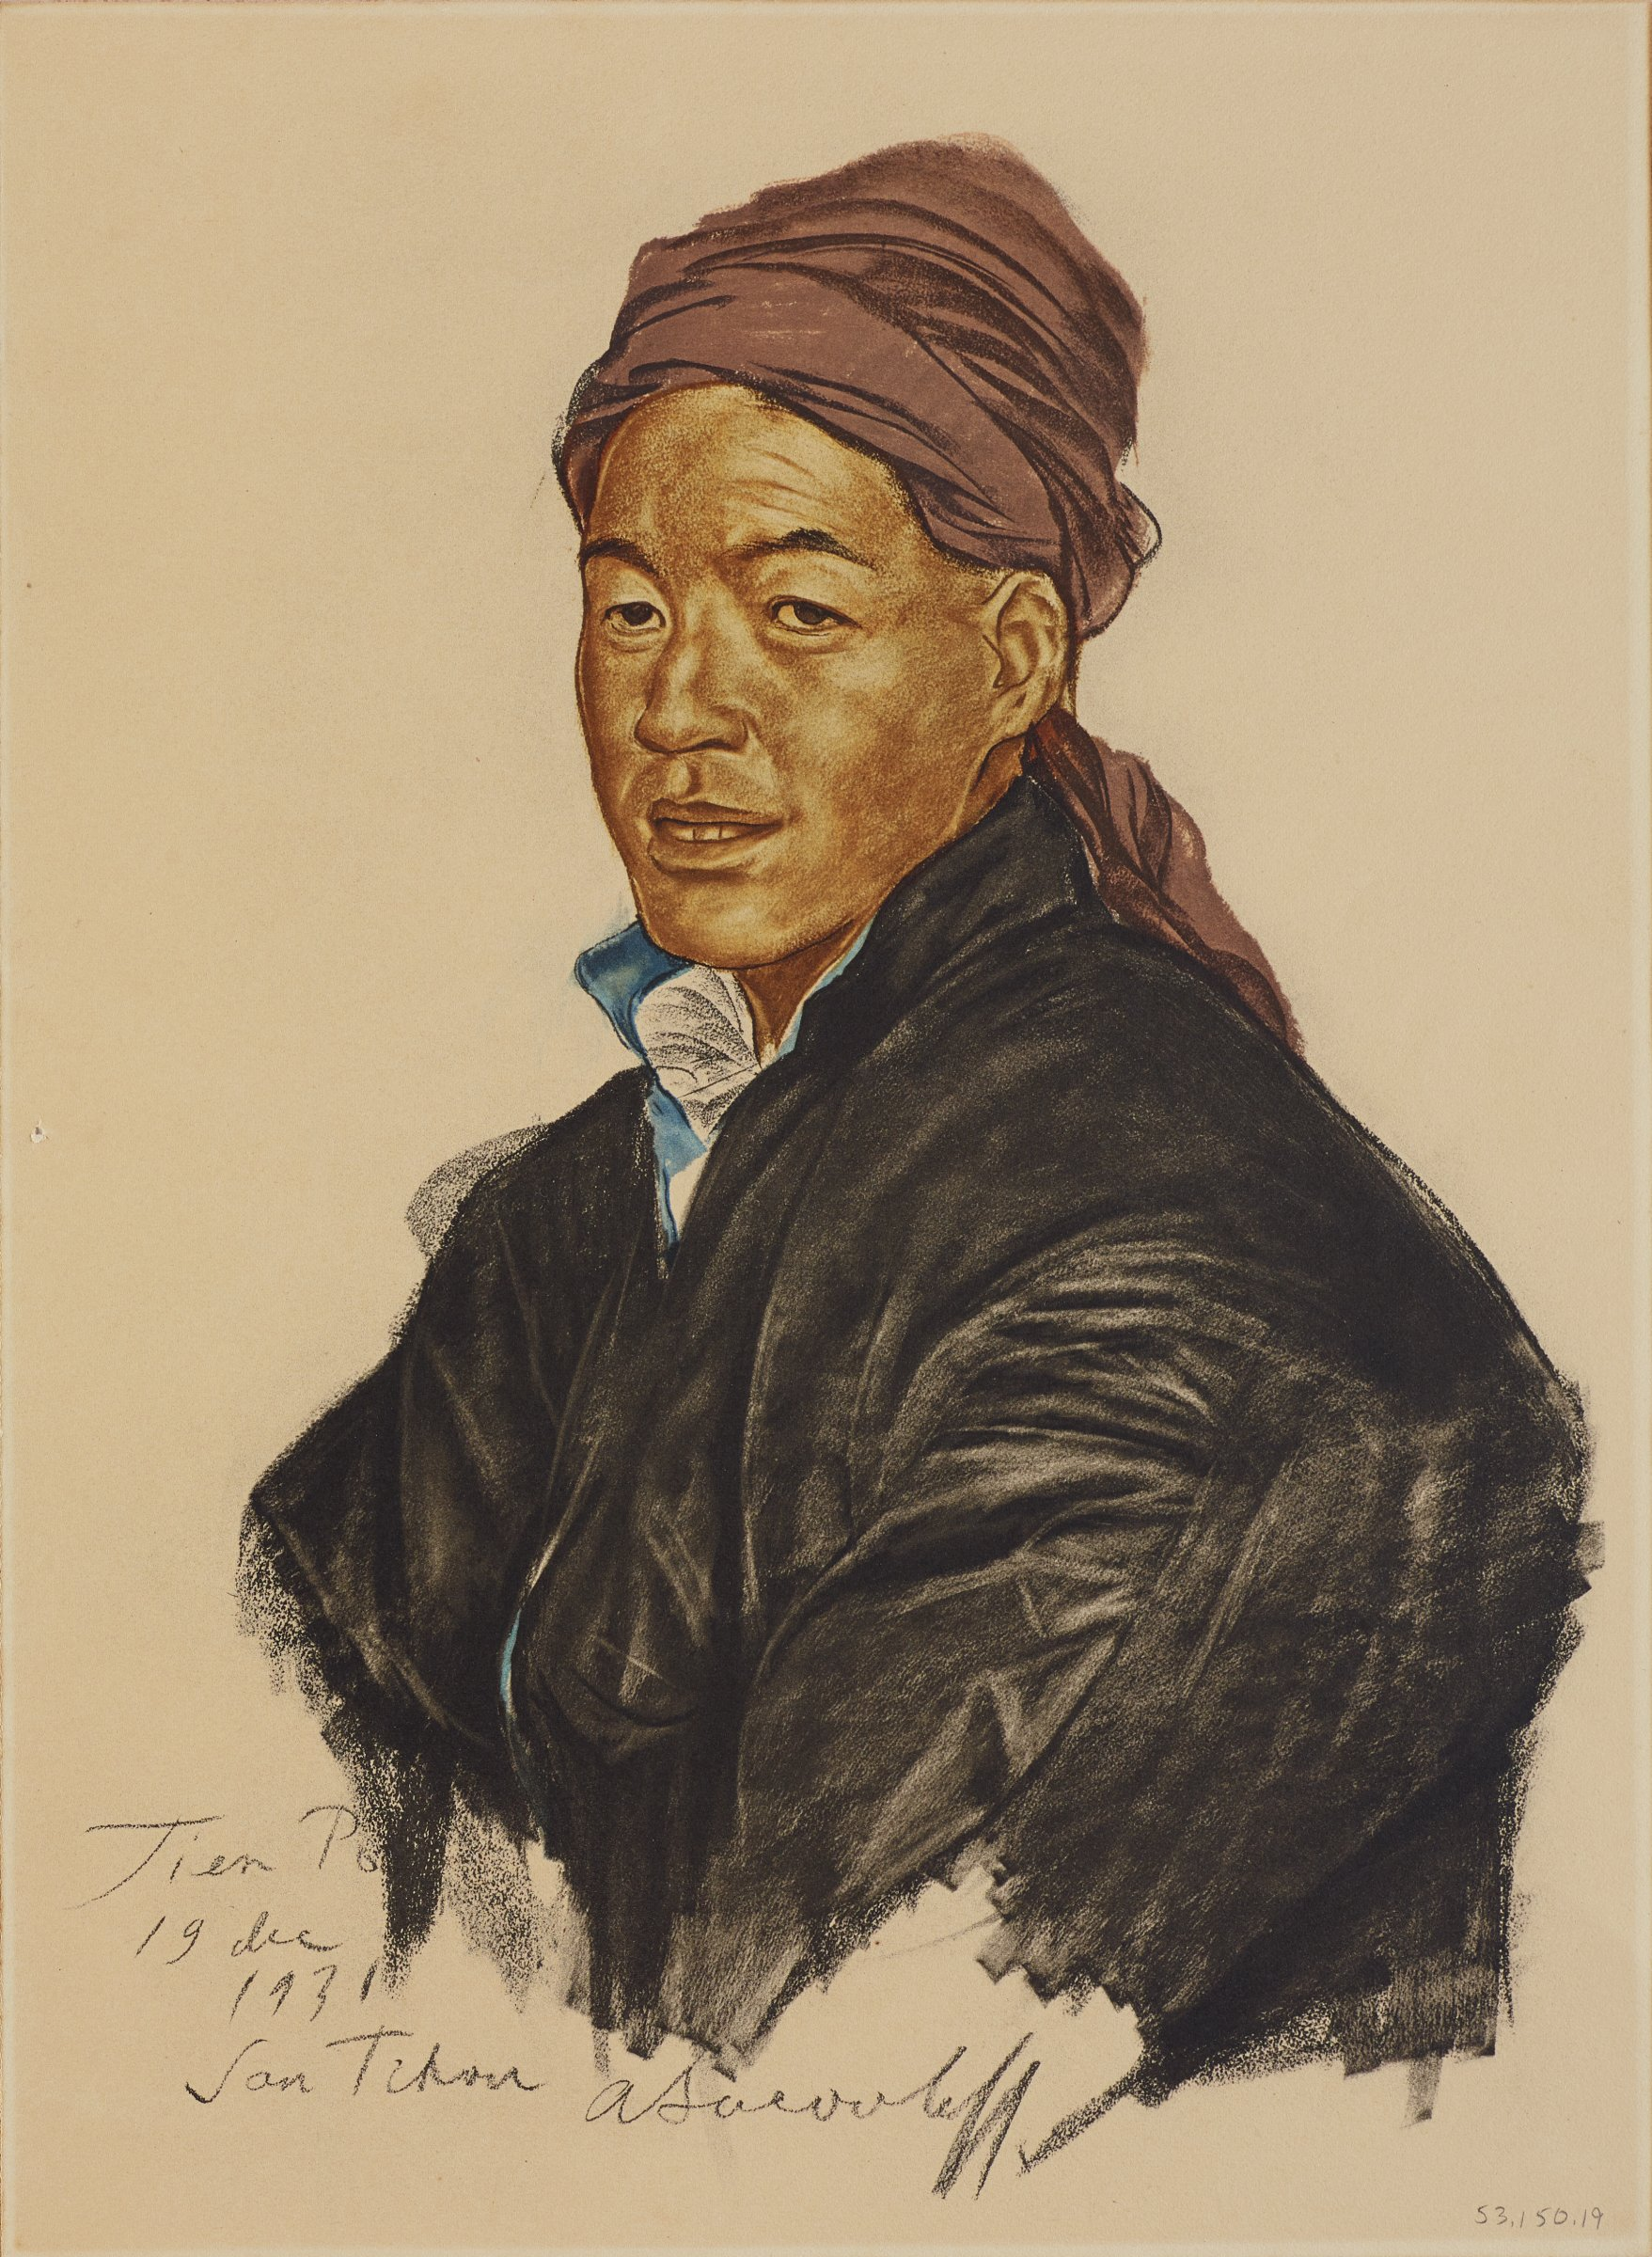 Half-length portrait of male figure in a black jackets and a purple headscarf. His body is turned slightly to the left as he faces out to the viewer. This series is a product of Jacovleff's involvement in the Expédition Citroën Centre-Asie.